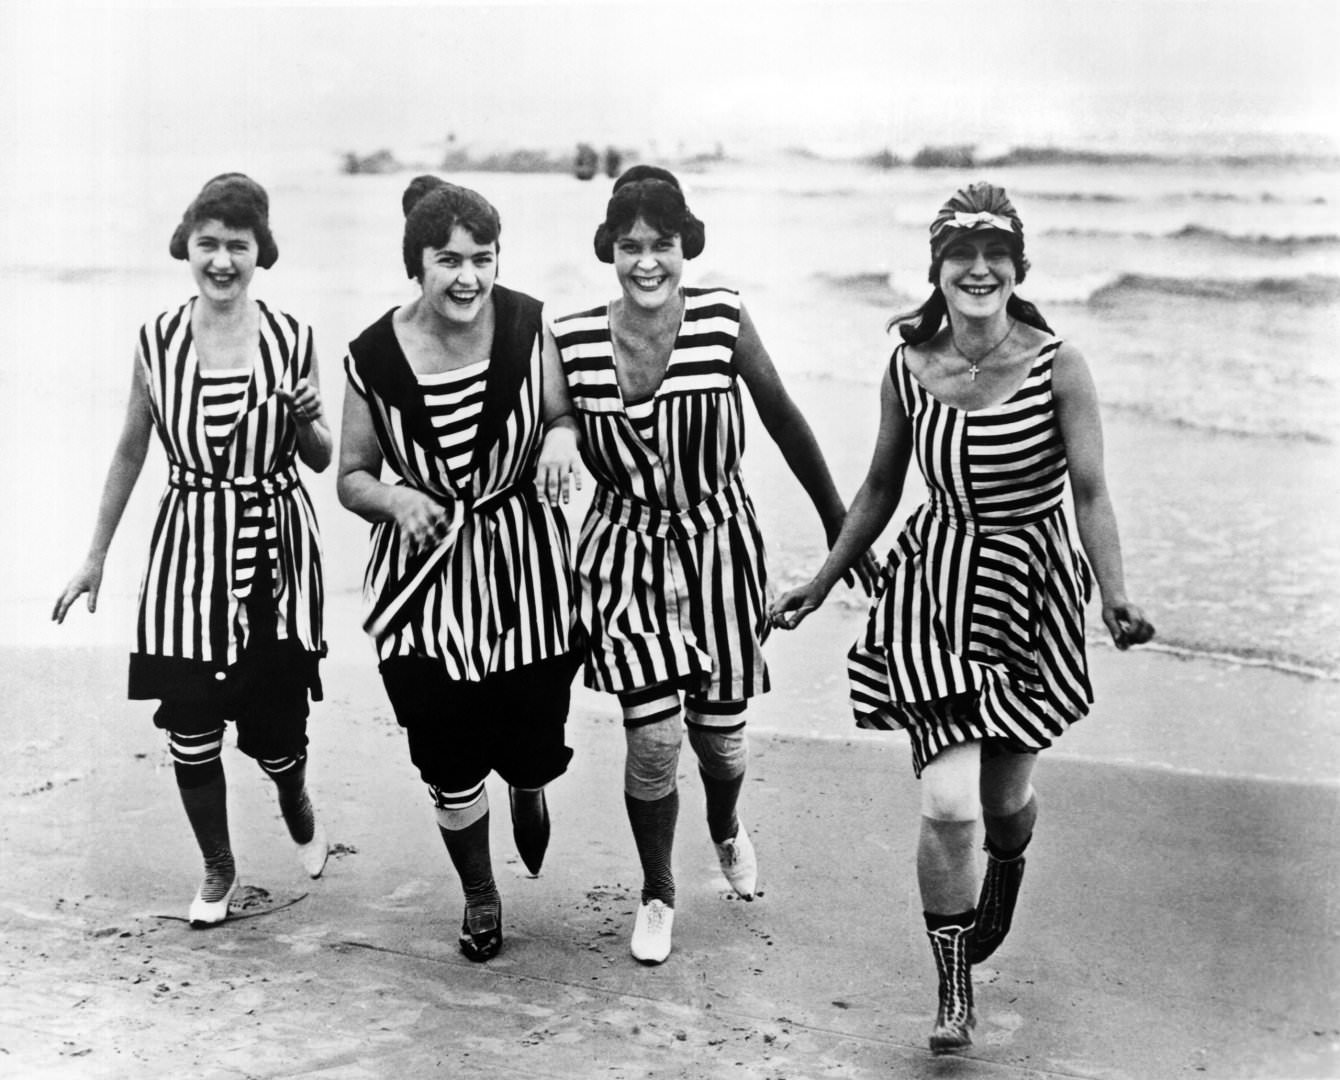 Four young women in matching beach wear run out of the surf, Los Angeles, 1910